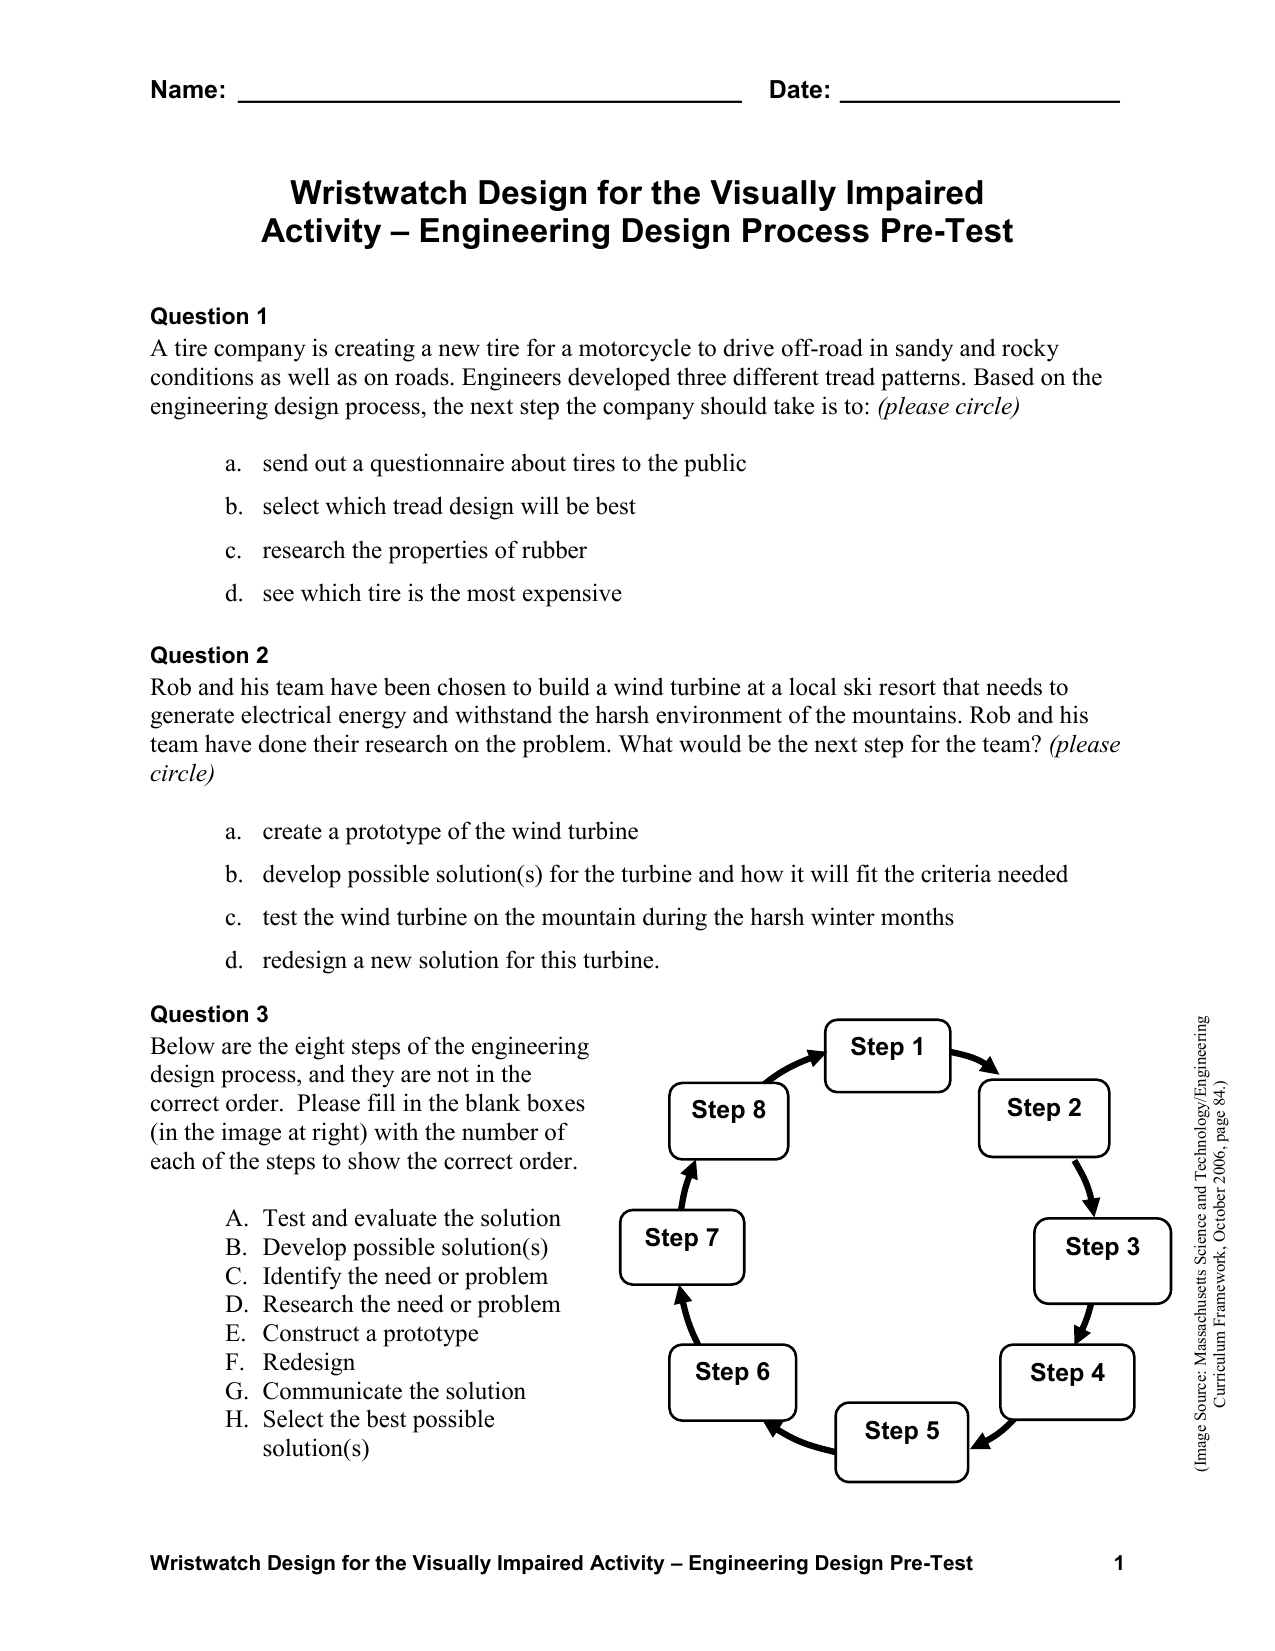 EDP Pre-Test With Engineering Design Process Worksheet